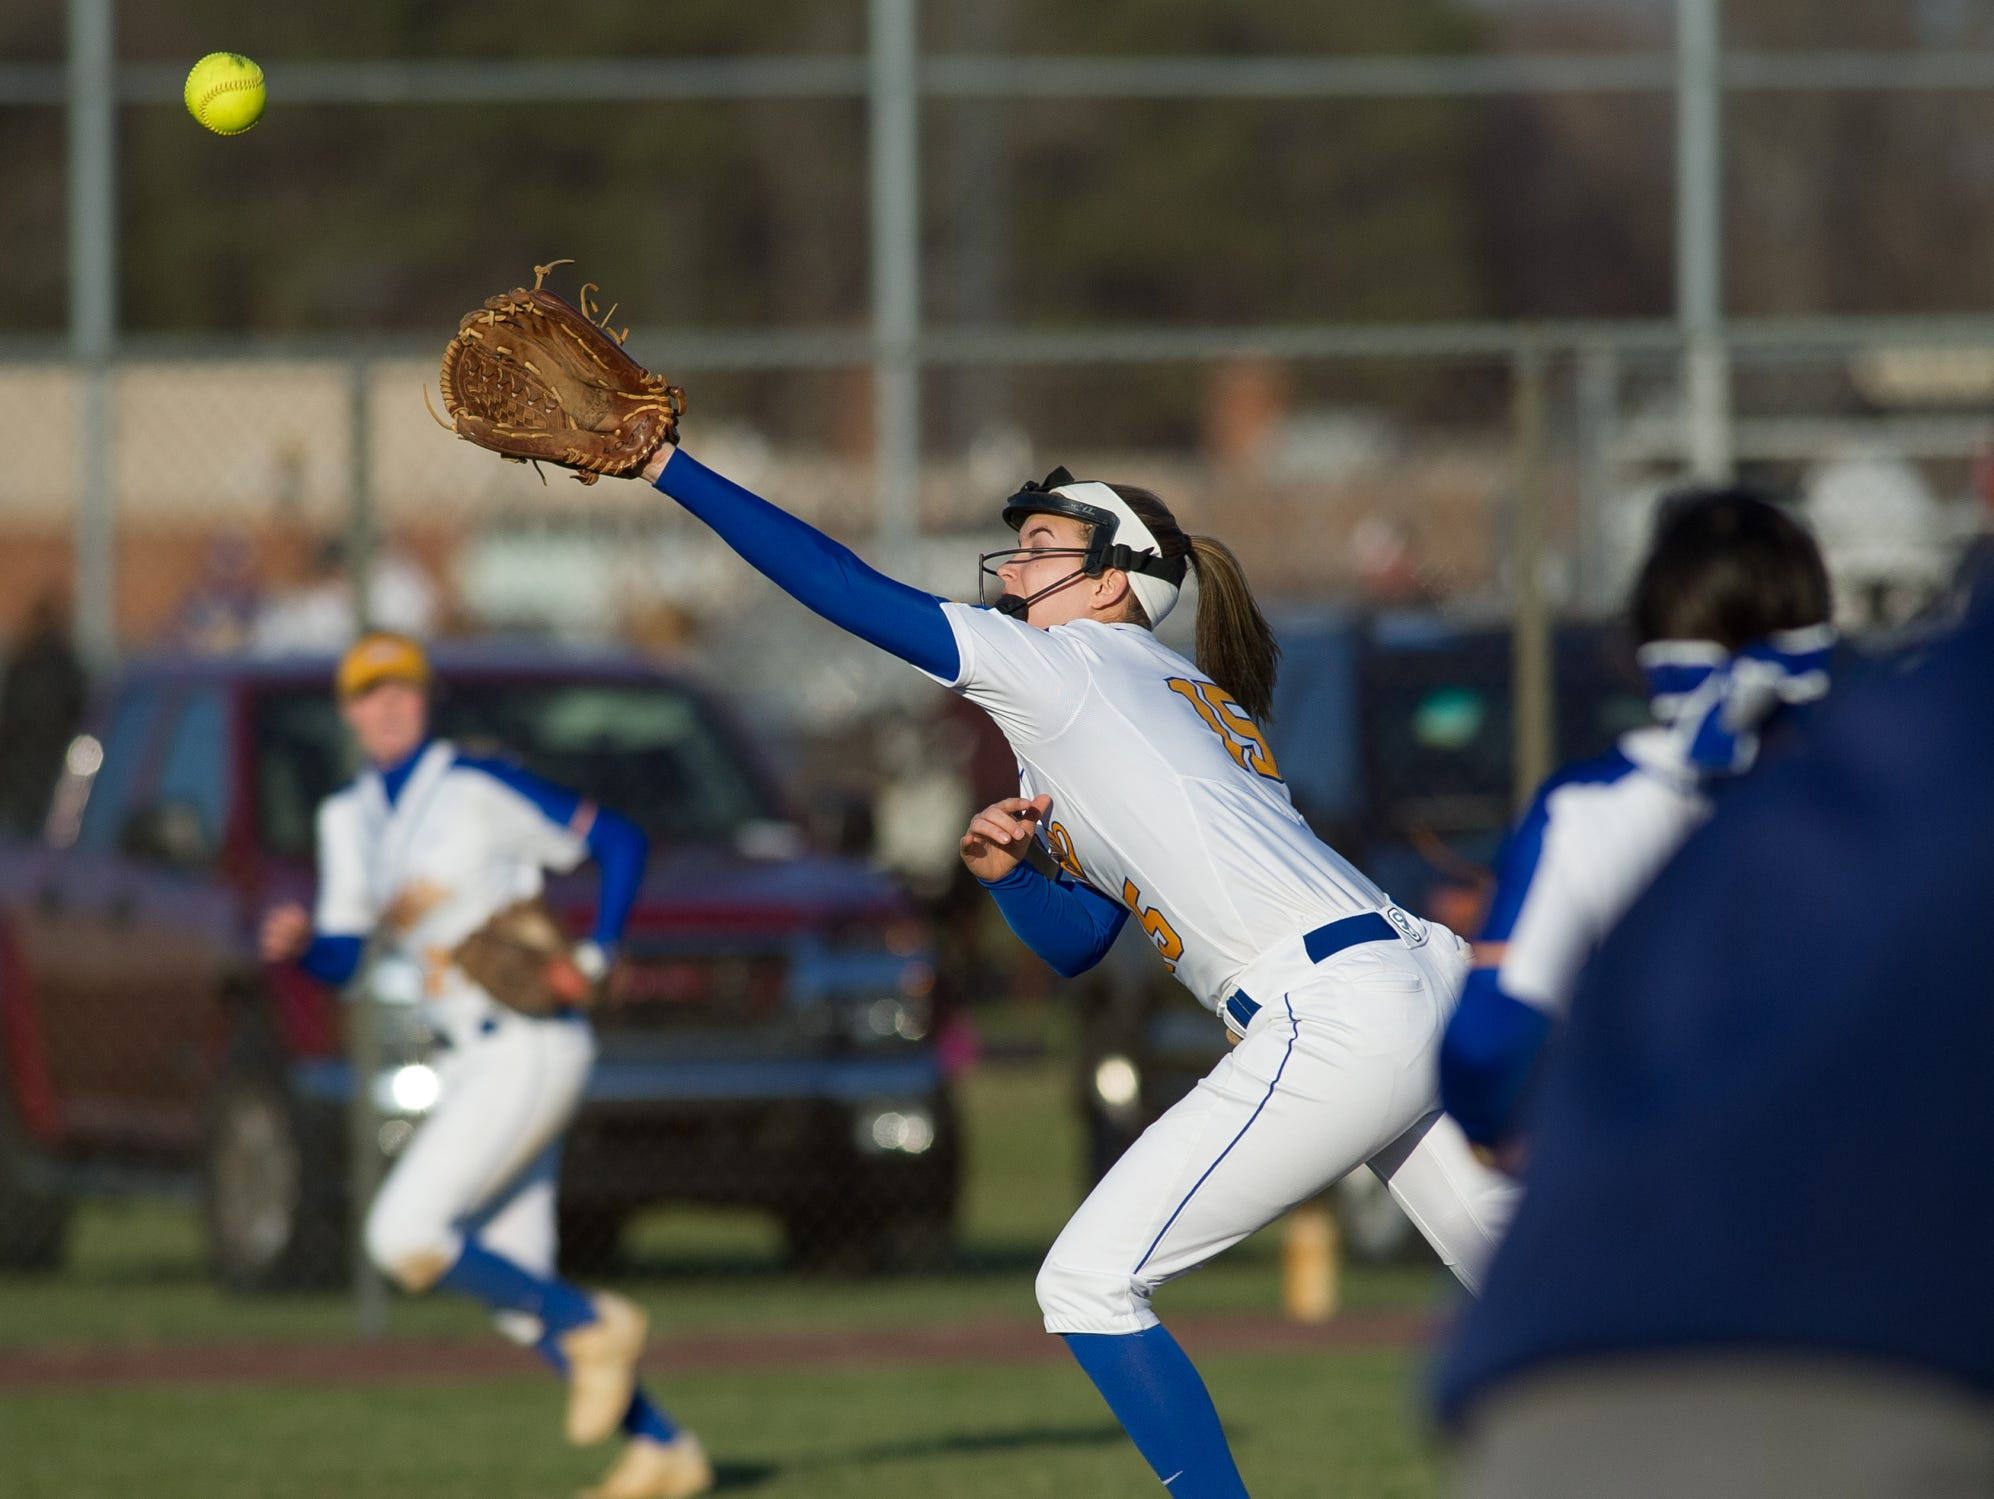 Sussex Central's Brooke Stoeckel (15) jumps in the air trying to catch a hit by Sussex Tech.